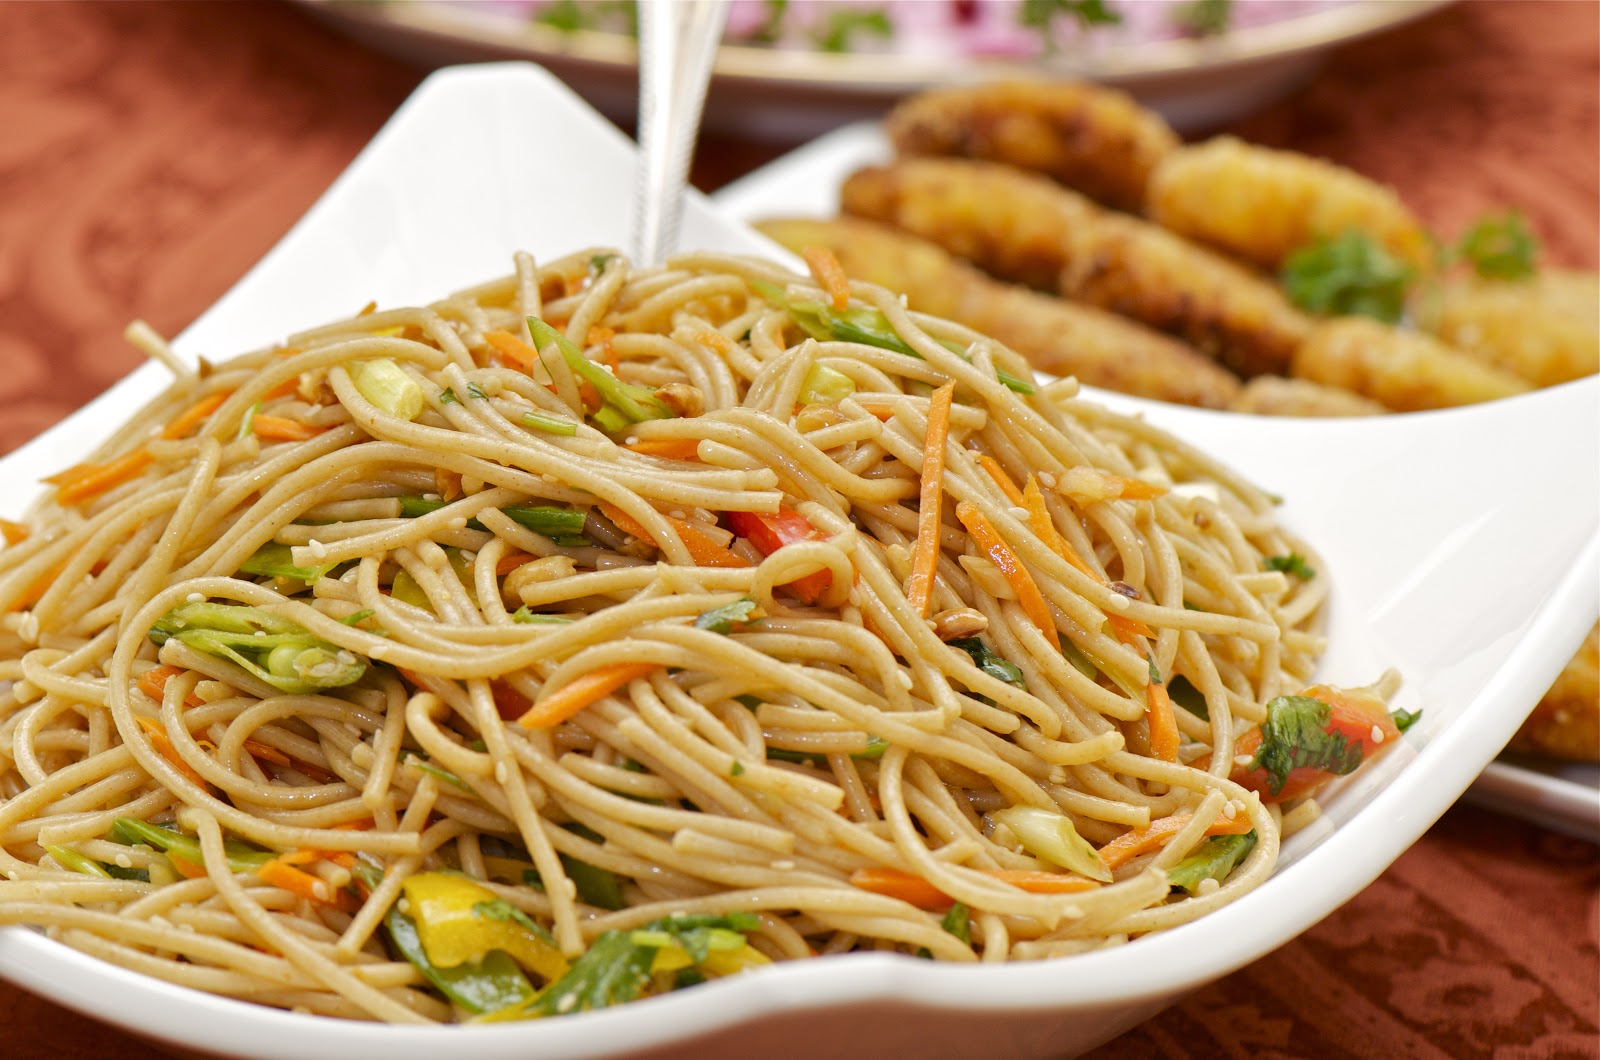 images of noodles - photo #30